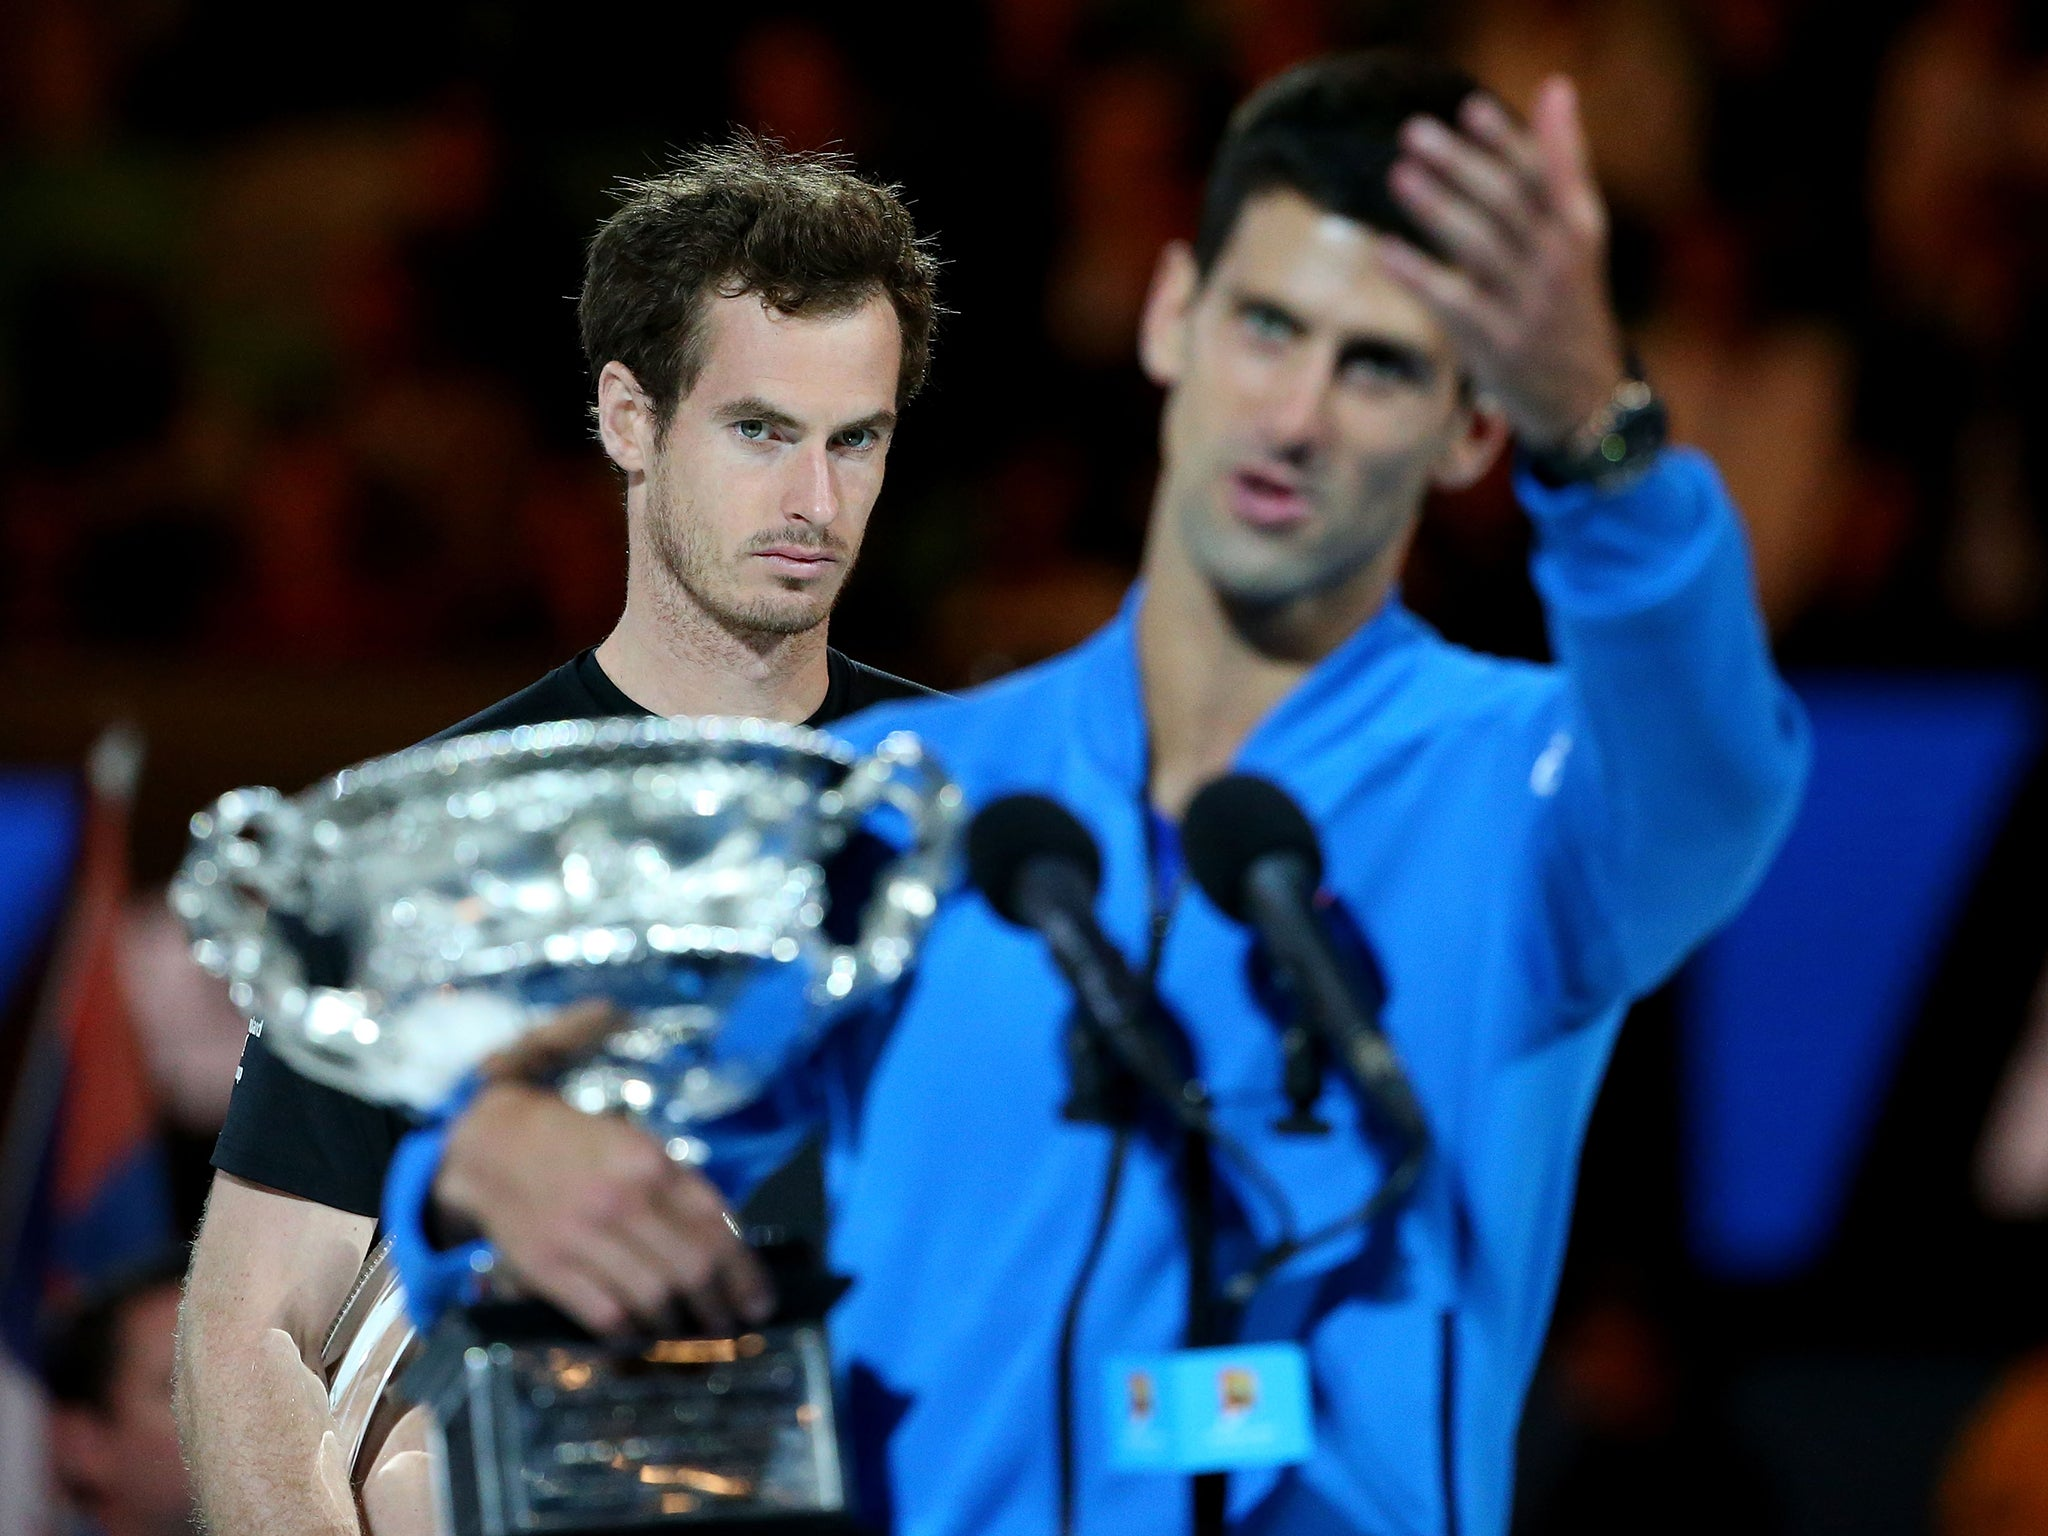 Australian Open Novak Djokovic Wants To Talk With Andy Murray To End Hard Feelings After Final Controversy The Independent